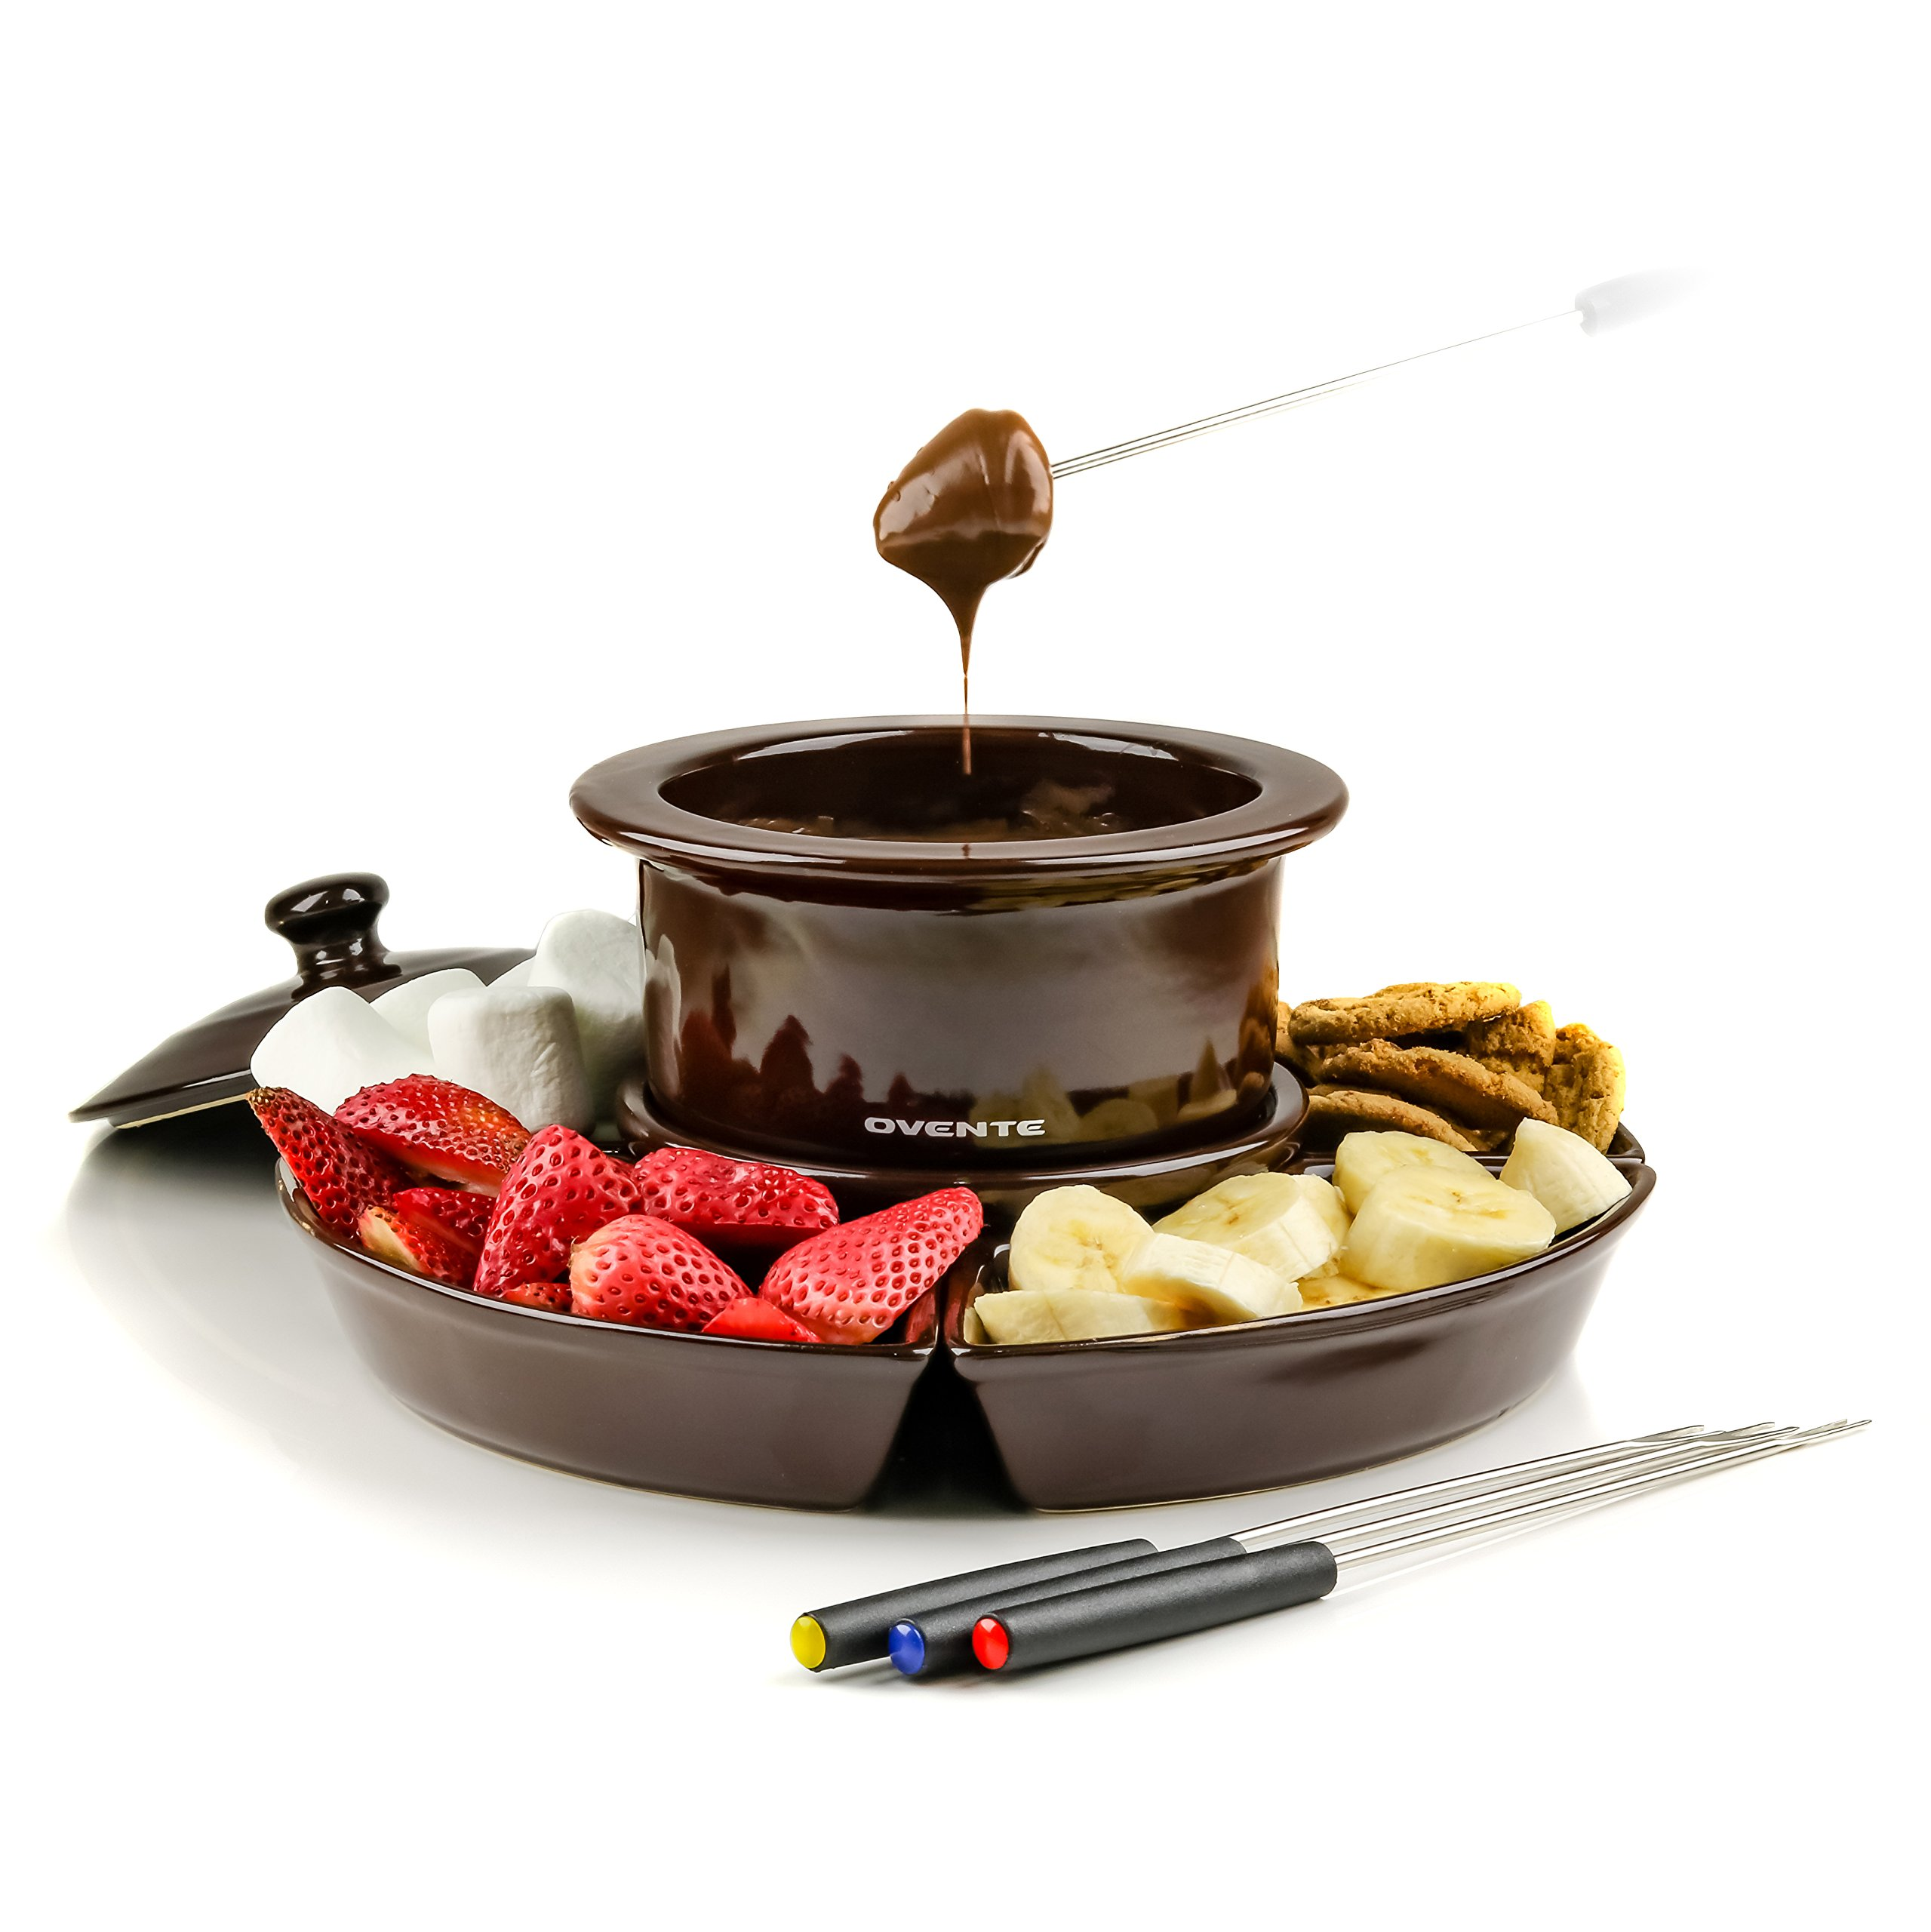 Ovente Electric Chocolate/Cheese Fondue Melting Pot and Warmer, 1L, Removable Ceramic Food Tray, Brown (CFC317BR)